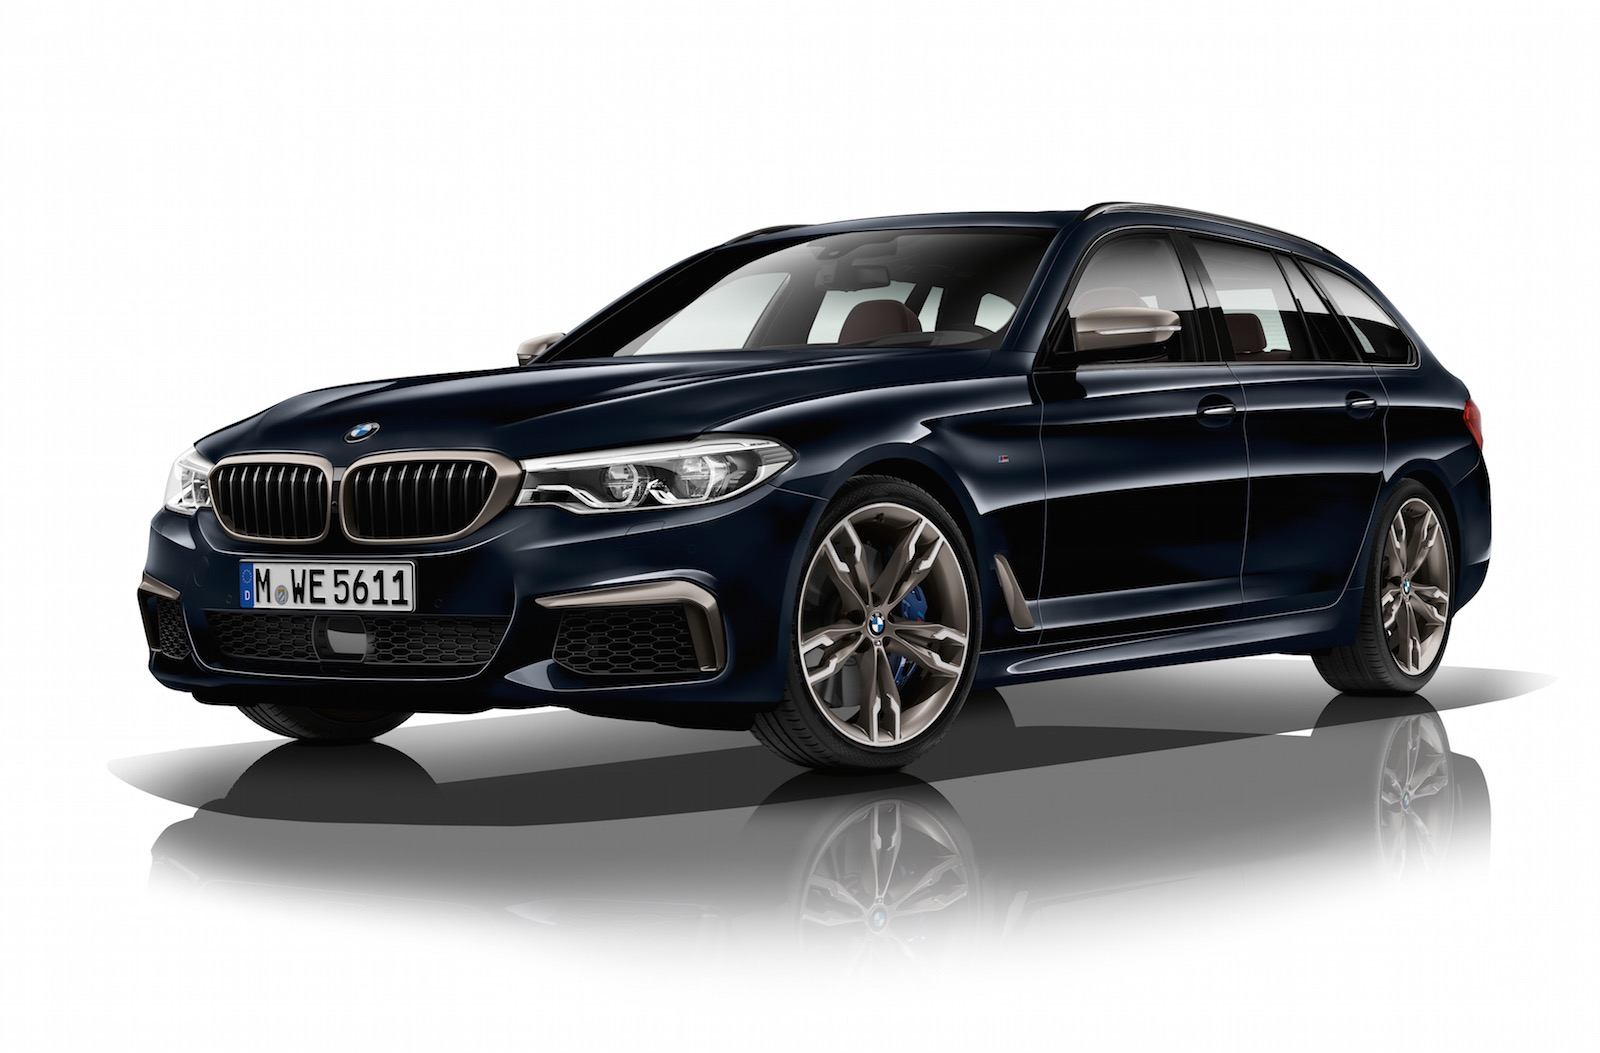 2017 bmw m550d revealed quad turbo most powerful 6cyl diesel performancedrive. Black Bedroom Furniture Sets. Home Design Ideas